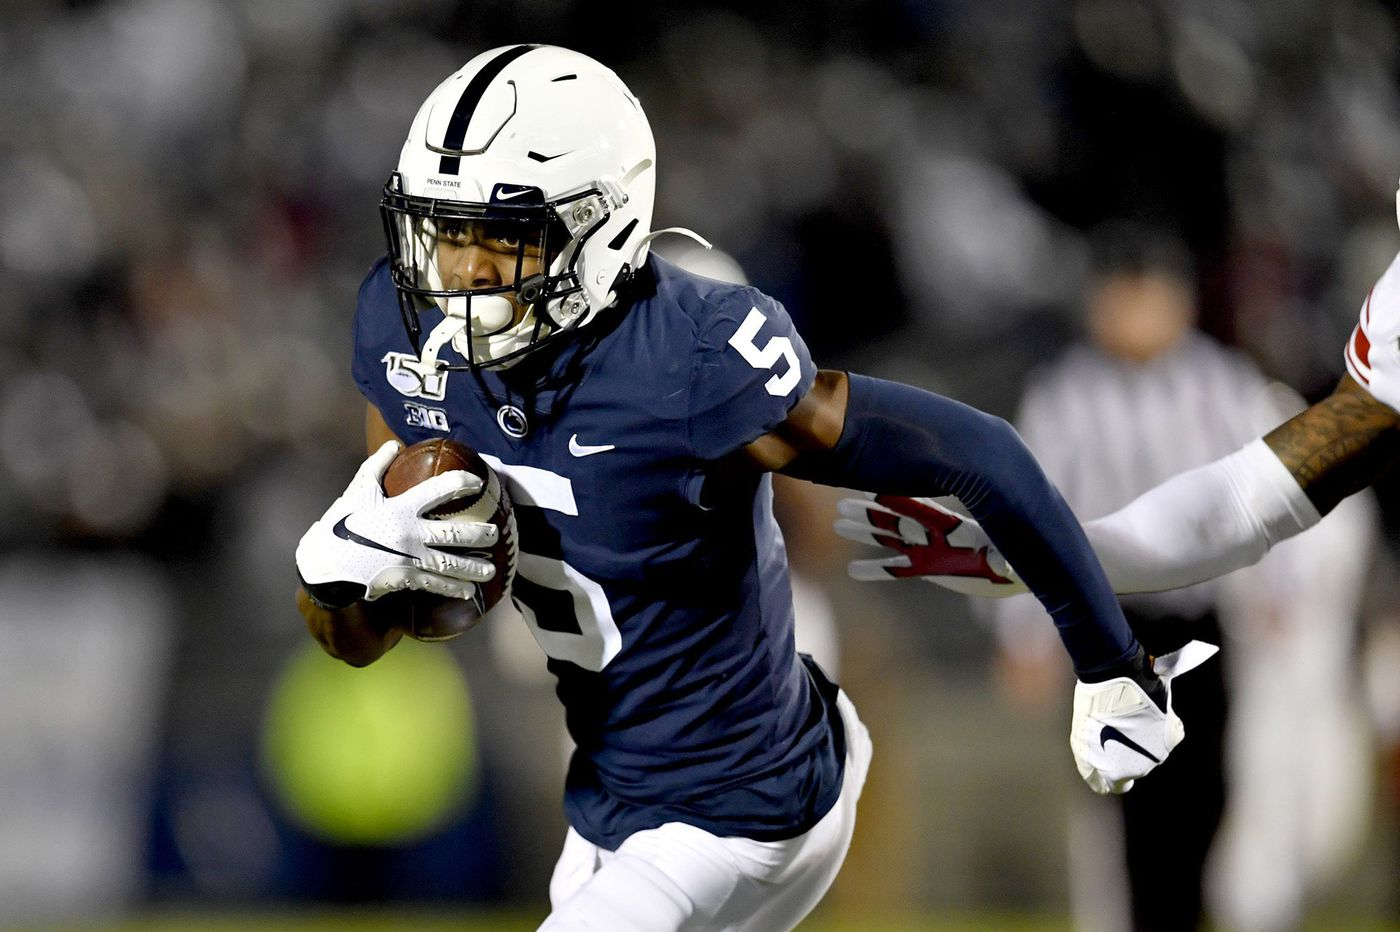 Penn State's Jahan Dotson ready to become the team's next go-to receiver